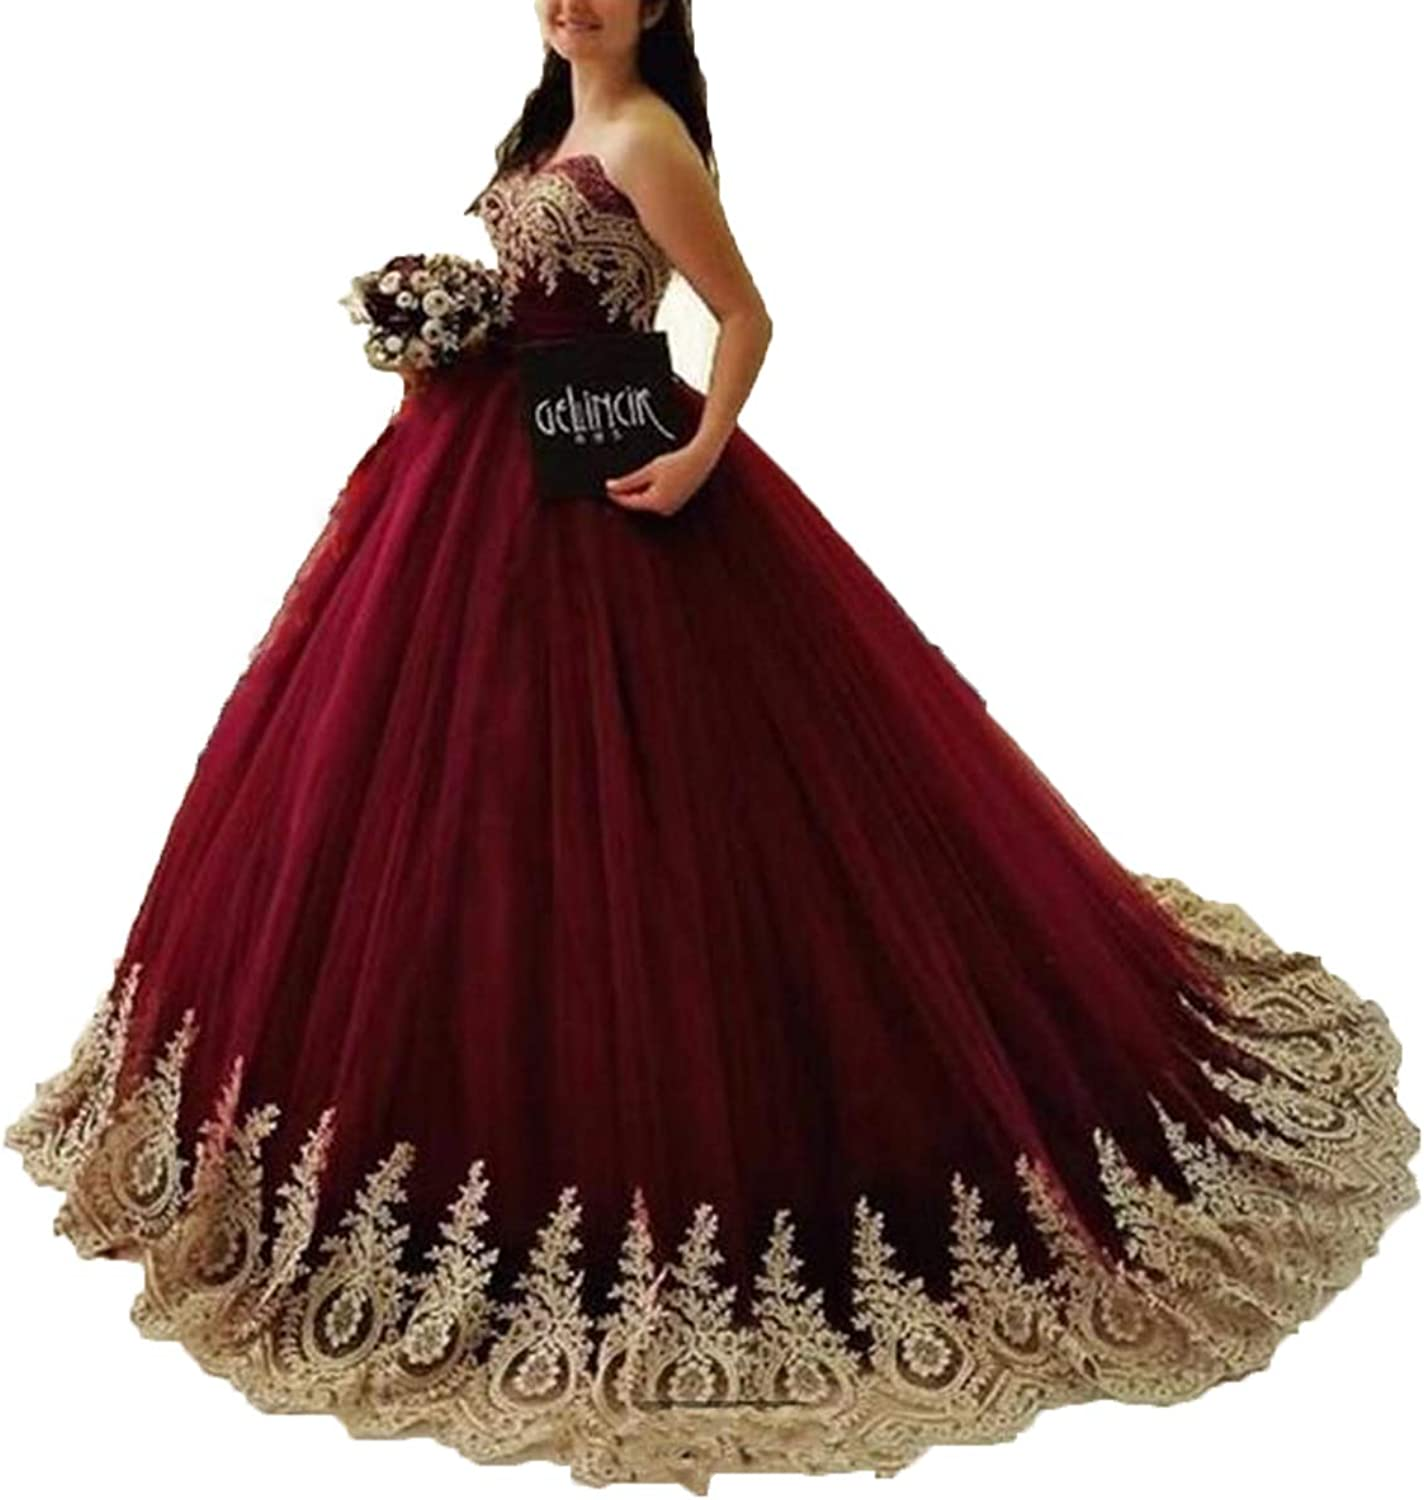 WIYMSHZ Bonnie Women's gold Lace Appplique Ball Gown Long Puffy Prom Sweet 16 Quinceance Dress BS059